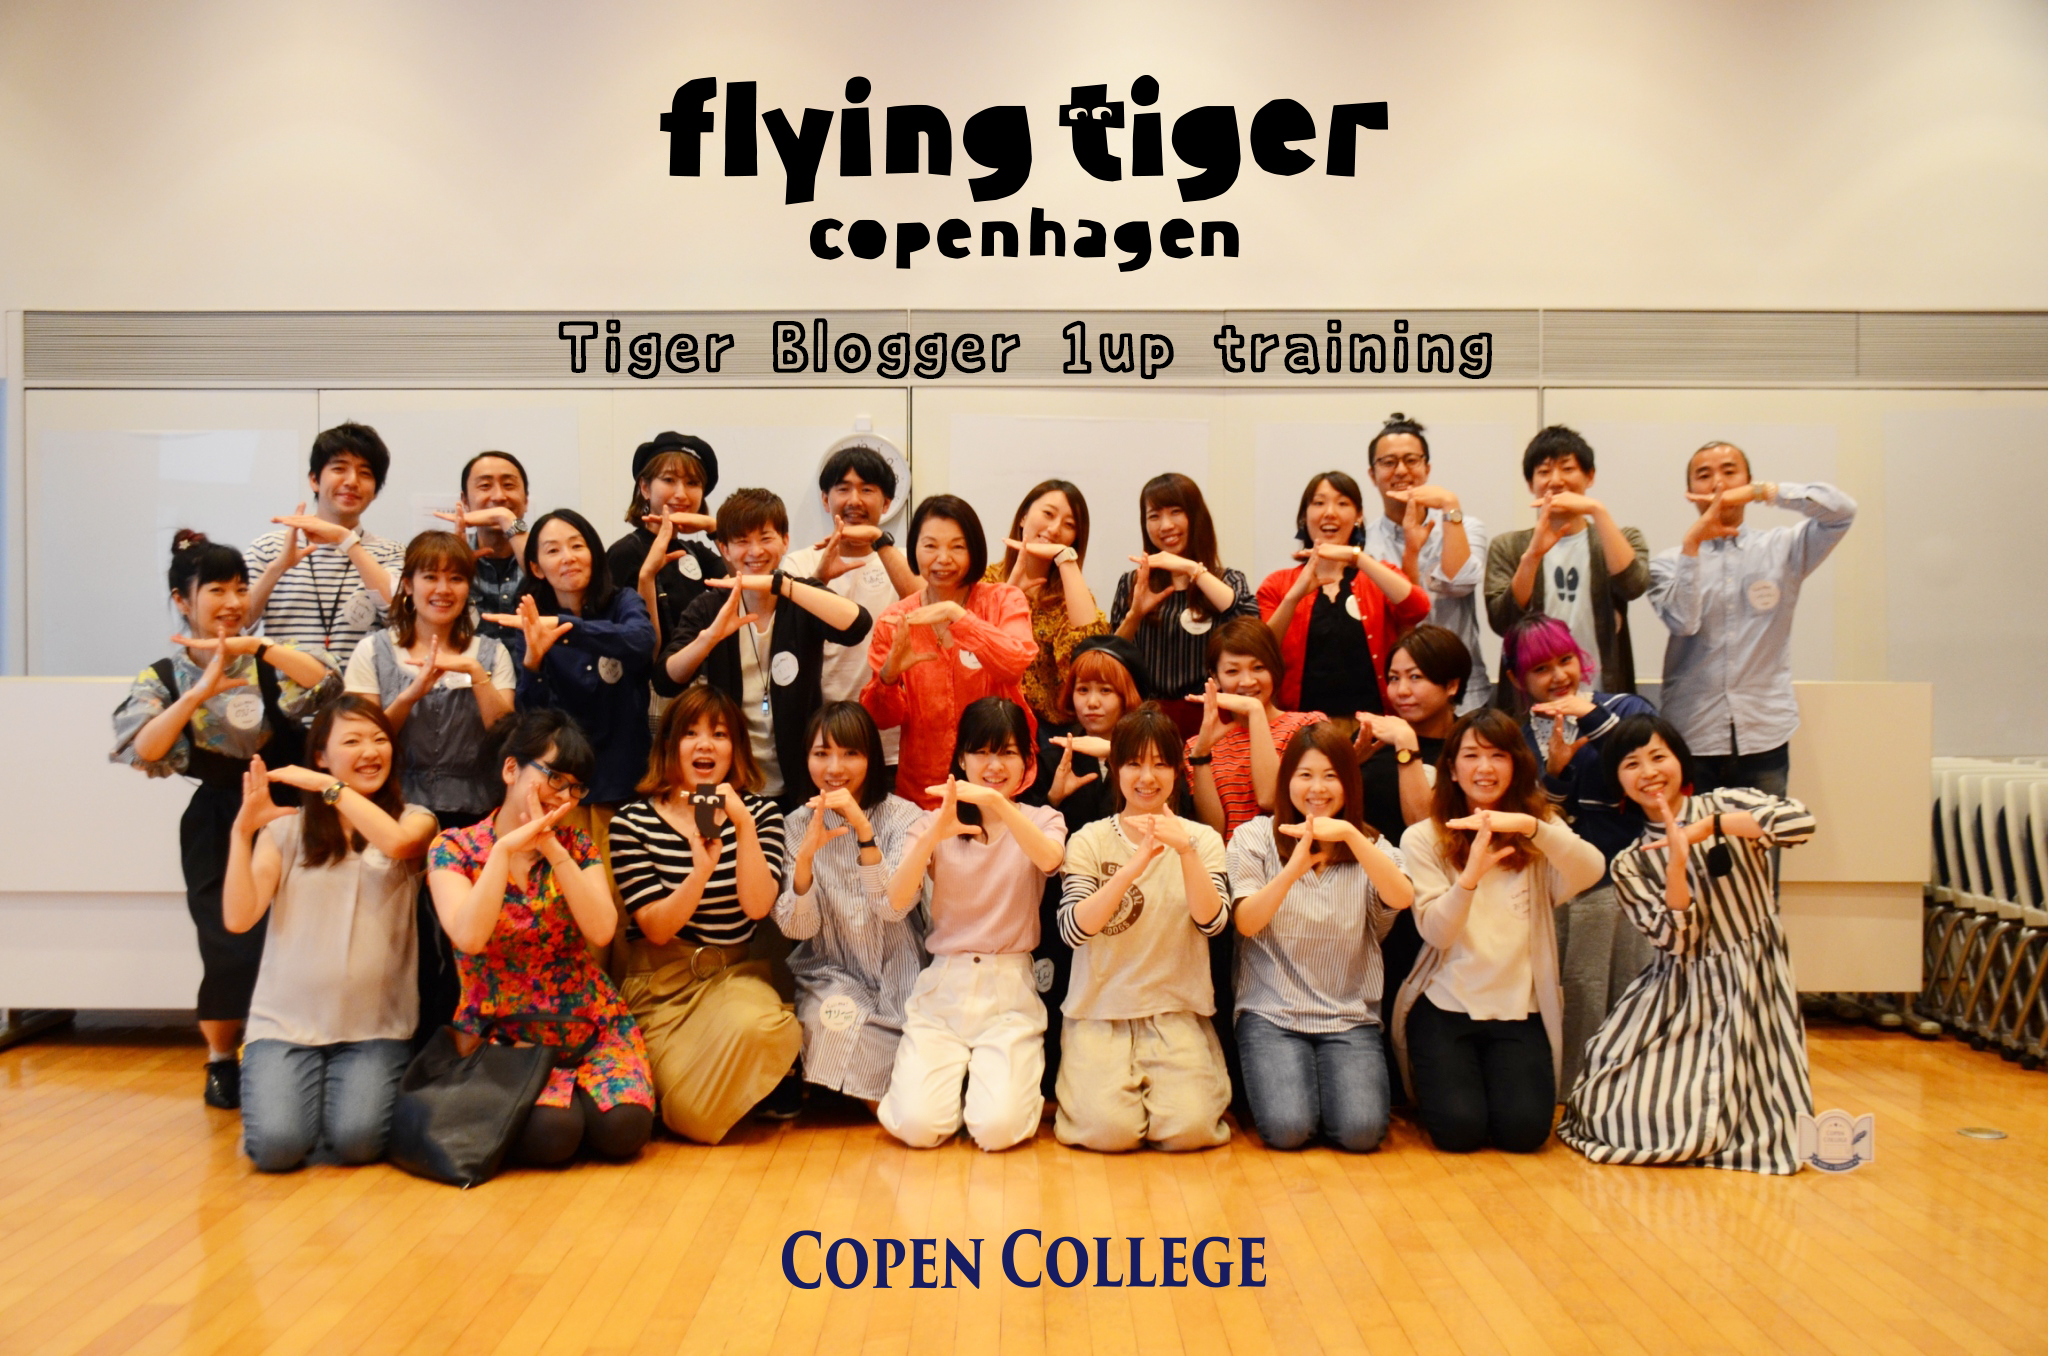 大型企画★ Flying Tiger Copenhagen × Copen College 企業研修レポ vol.1